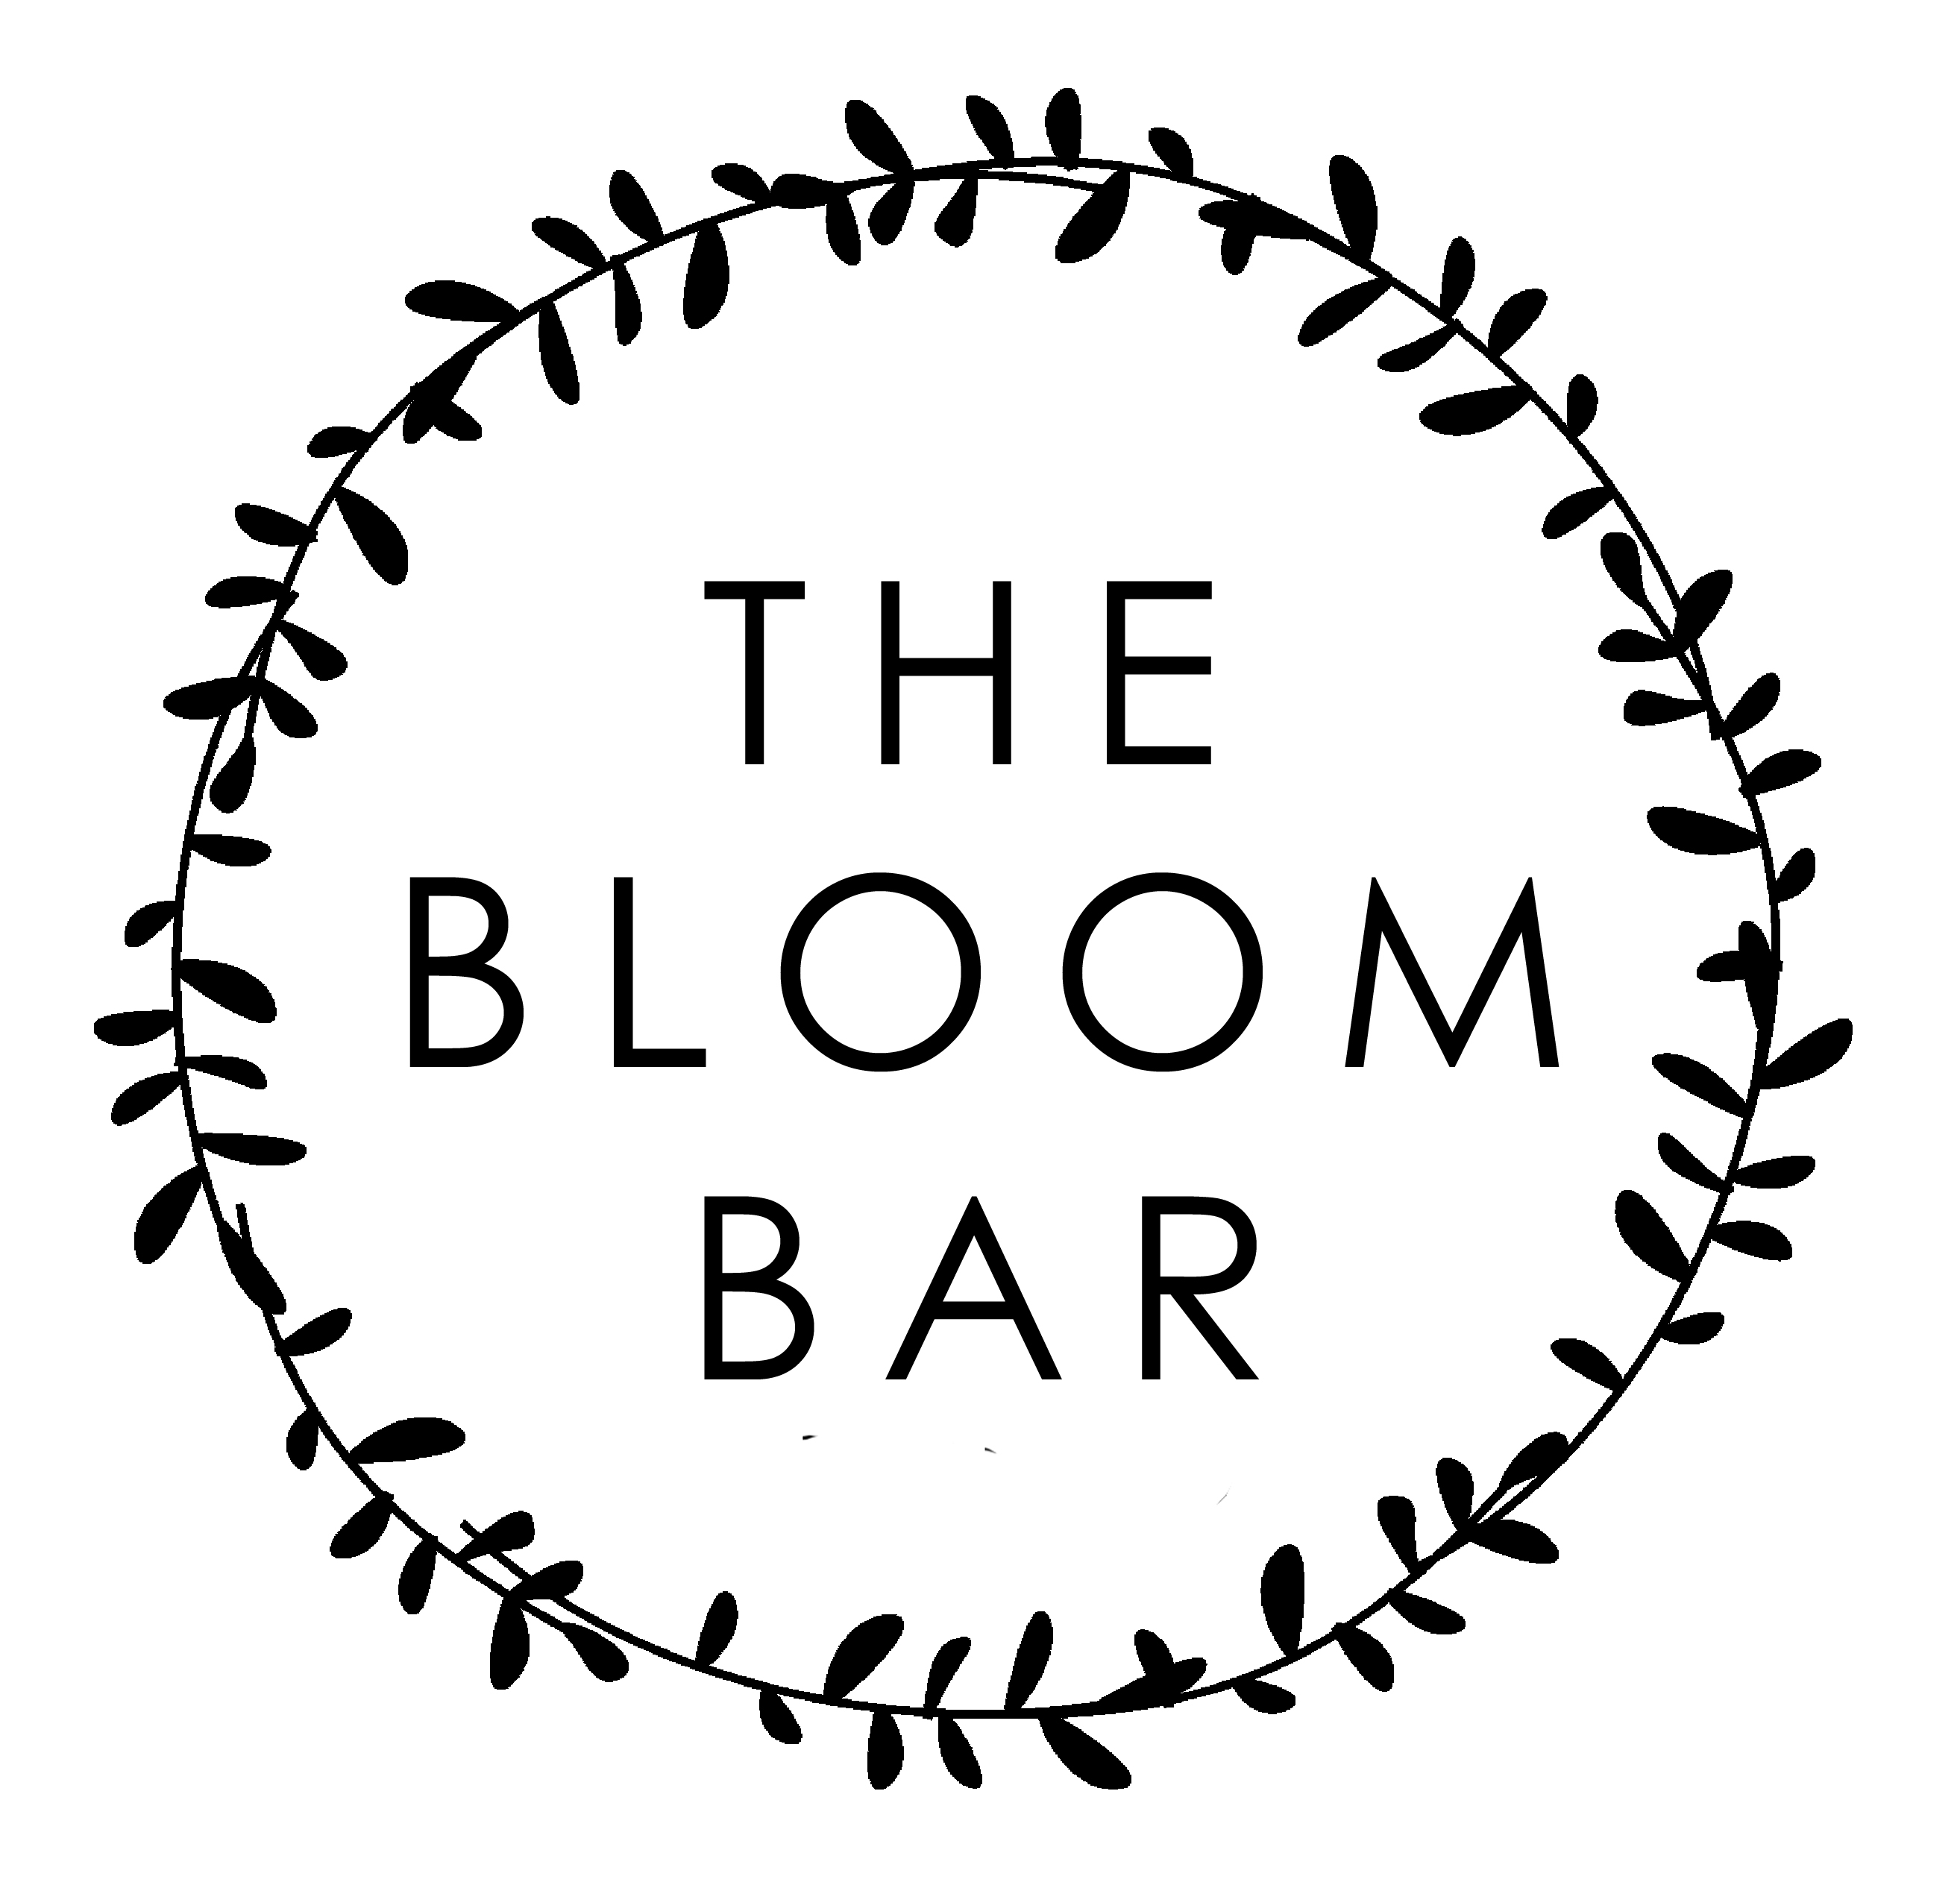 The Bloom Bar Floral